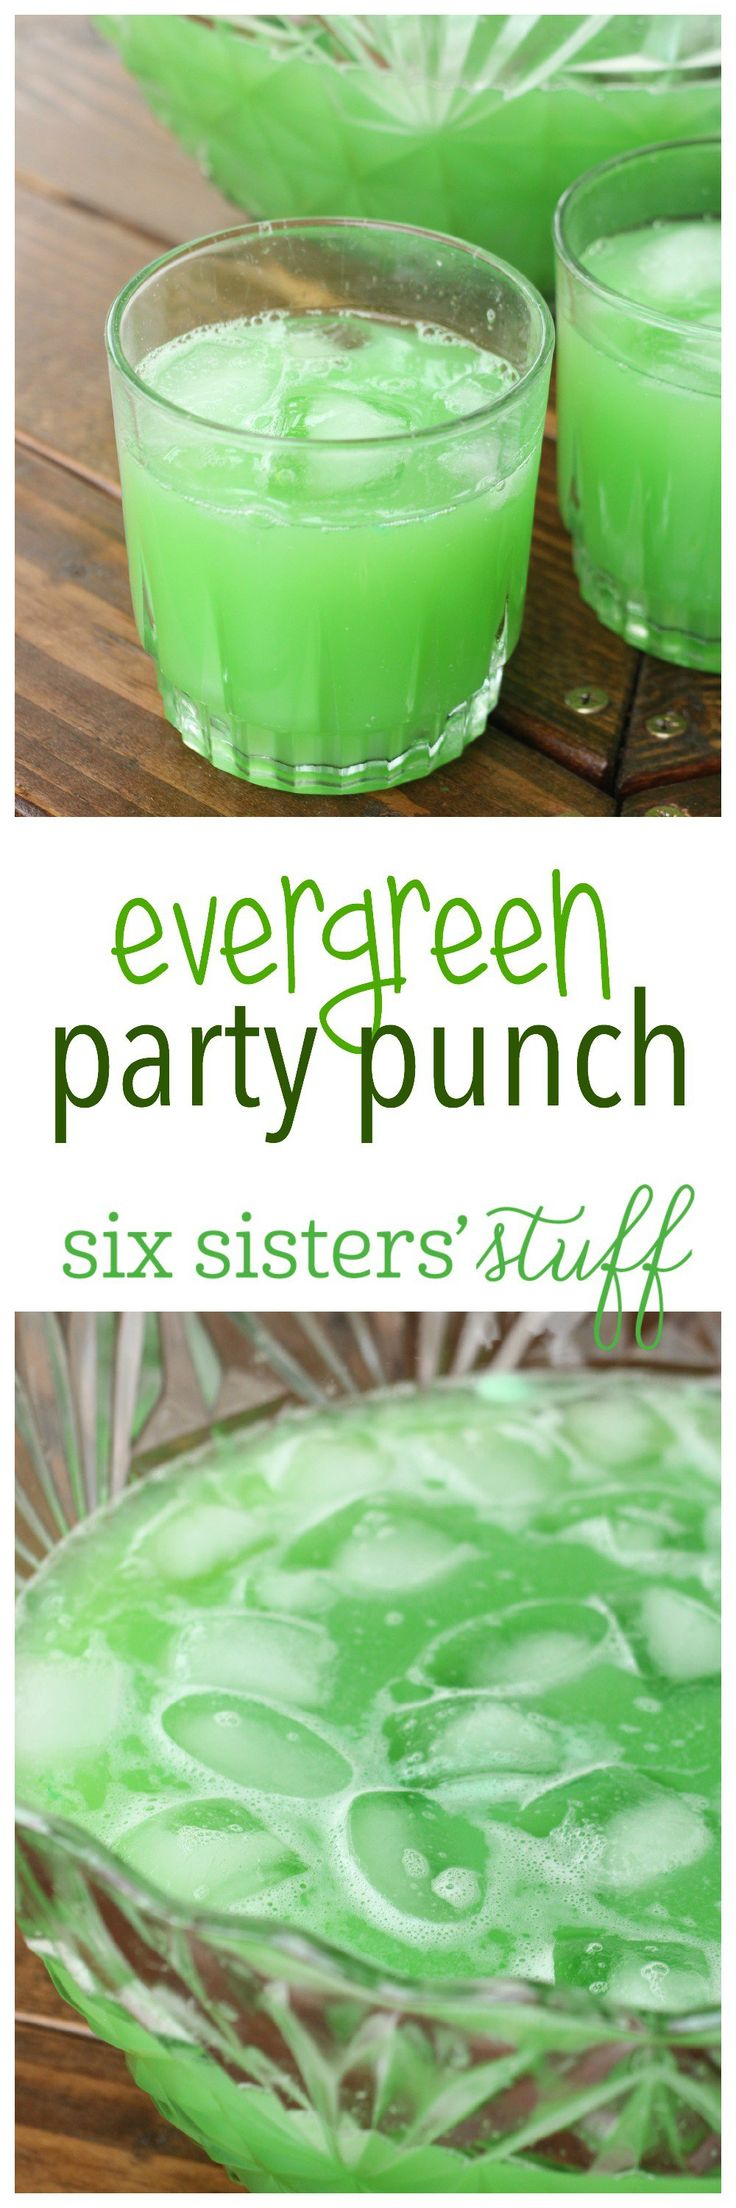 Evergreen Party Punch from SixSistersStuff.com - the perfect drink for Halloween, Christmas, and St. Patrick's Day parties!